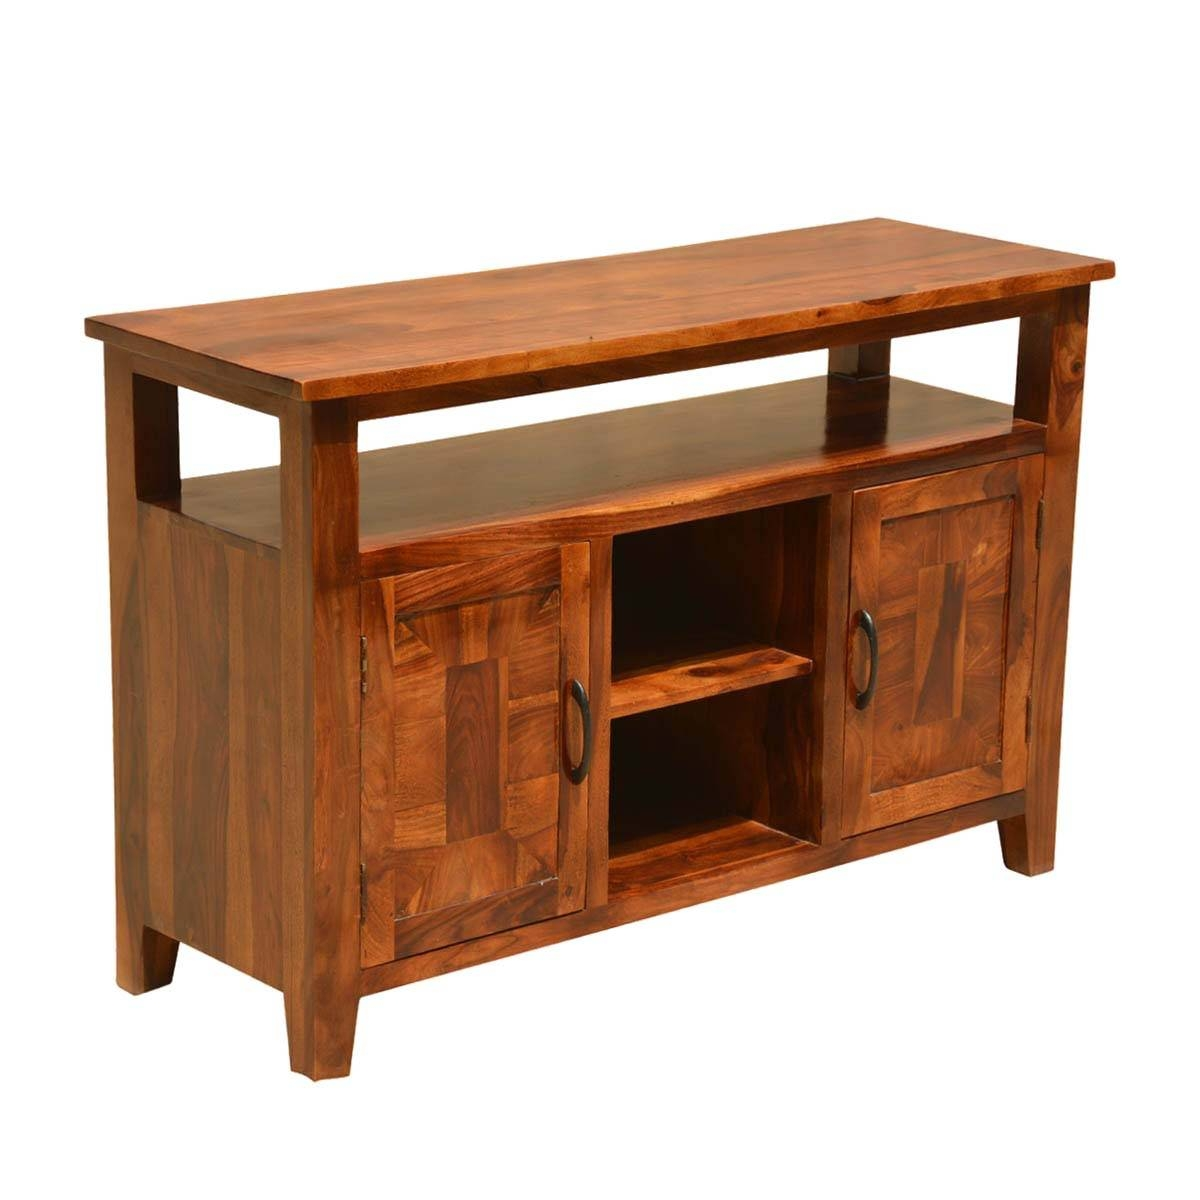 Nevada Traditional Solid Wood Buffet Rustic Sideboard Server Regarding Real Wood Sideboards (#8 of 15)